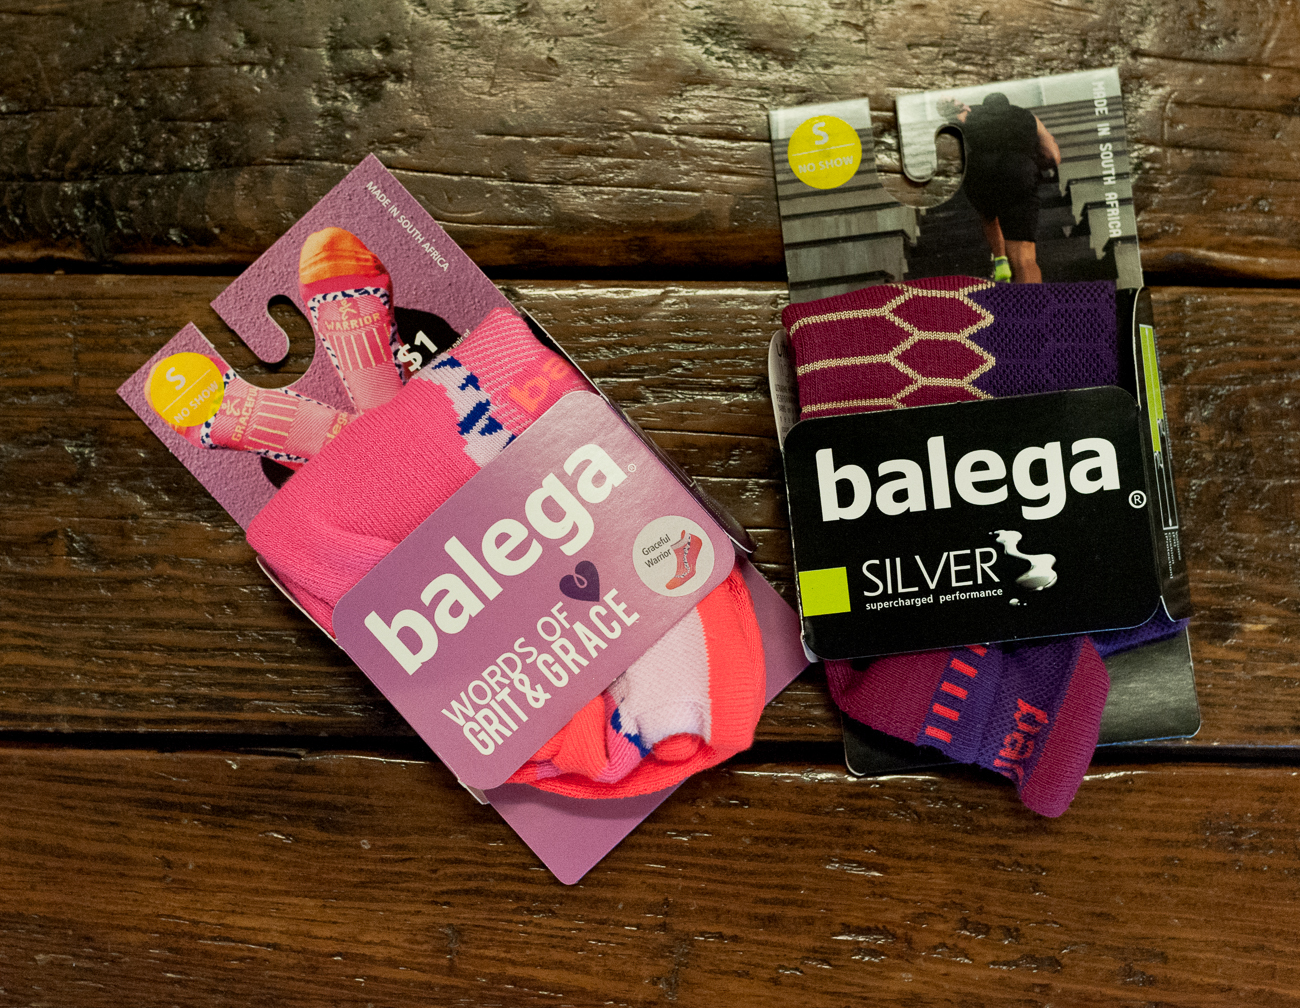 Balega socks{ }/ Image: Kellie Coleman // Published: 6.23.20